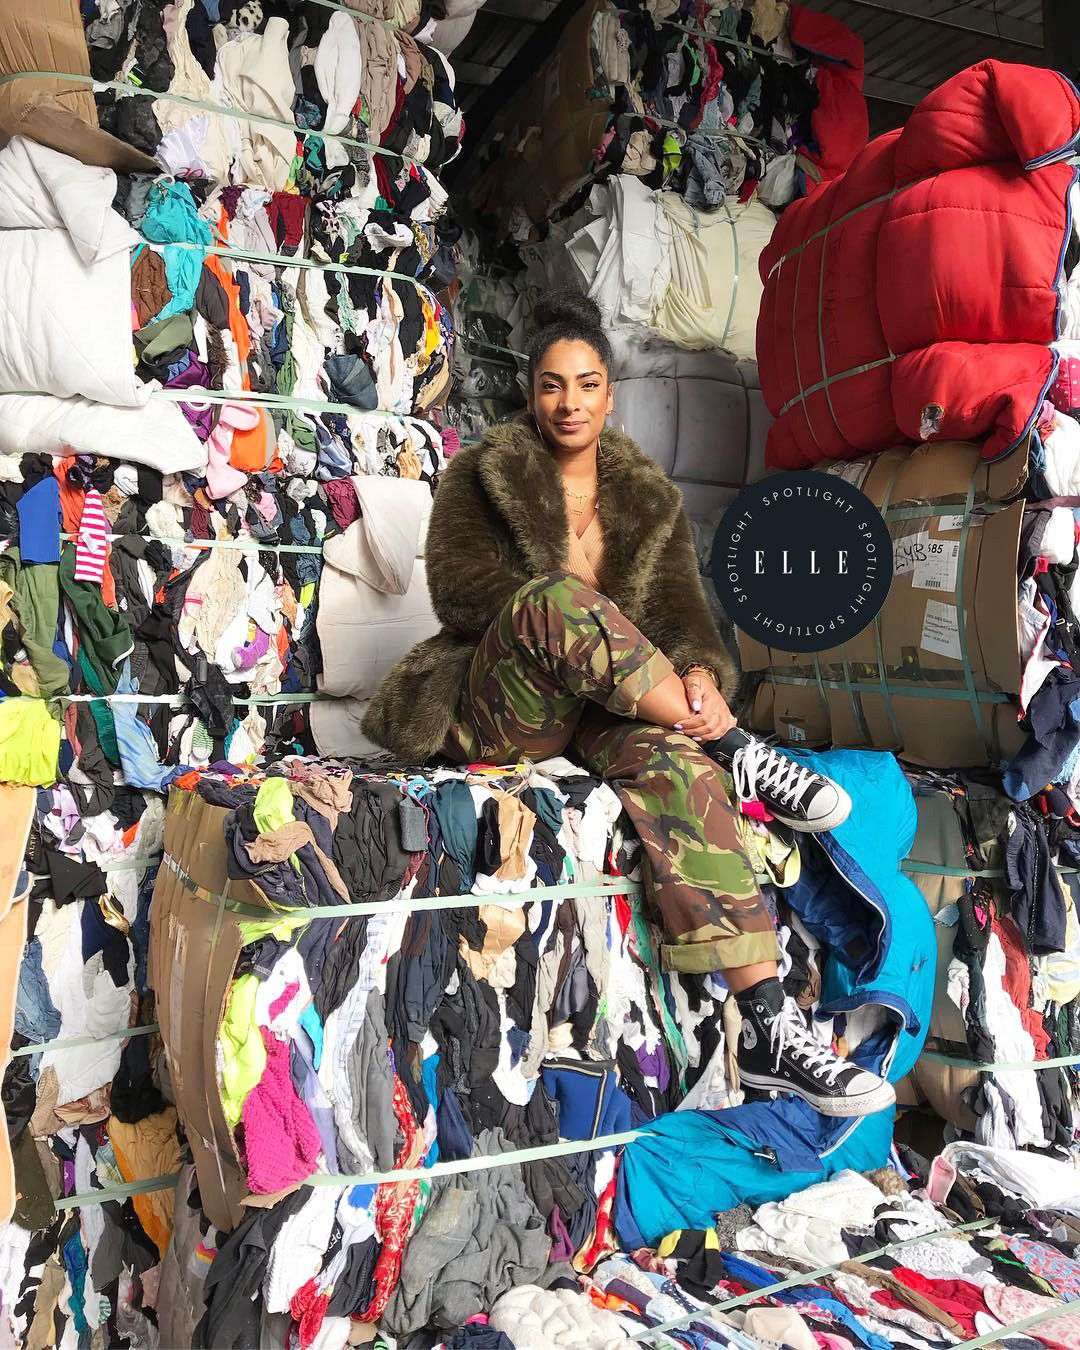 Priya Ahluwalia: The Up-And-Coming, Independent Fashion Brand You Should Invest In Now